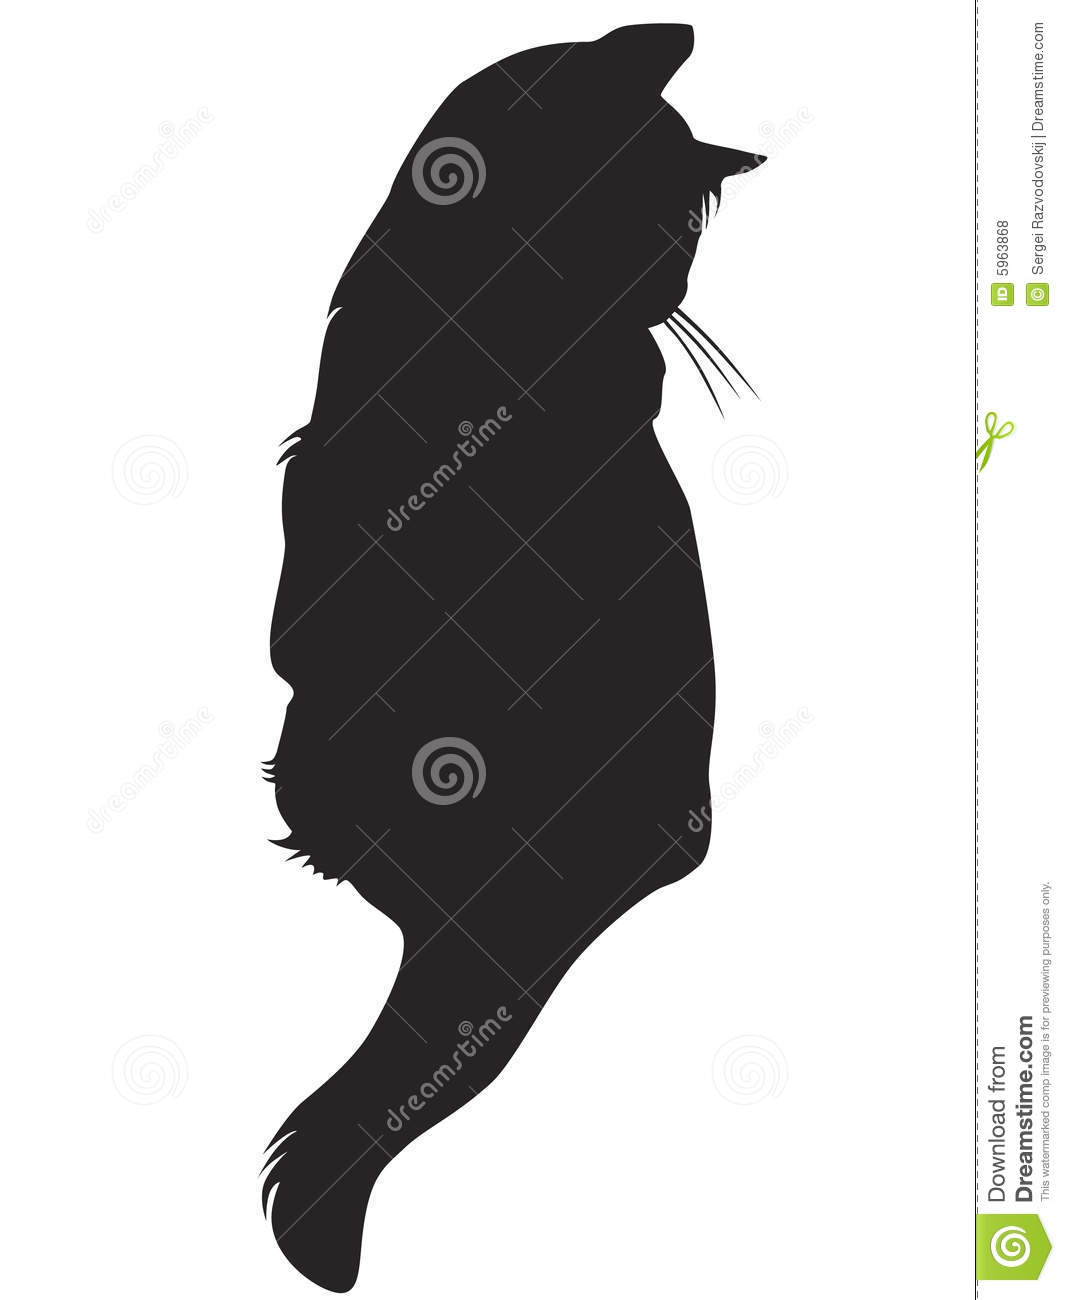 Black Cat Silhouette Royalty Free Stock Photos - Image: 5963868